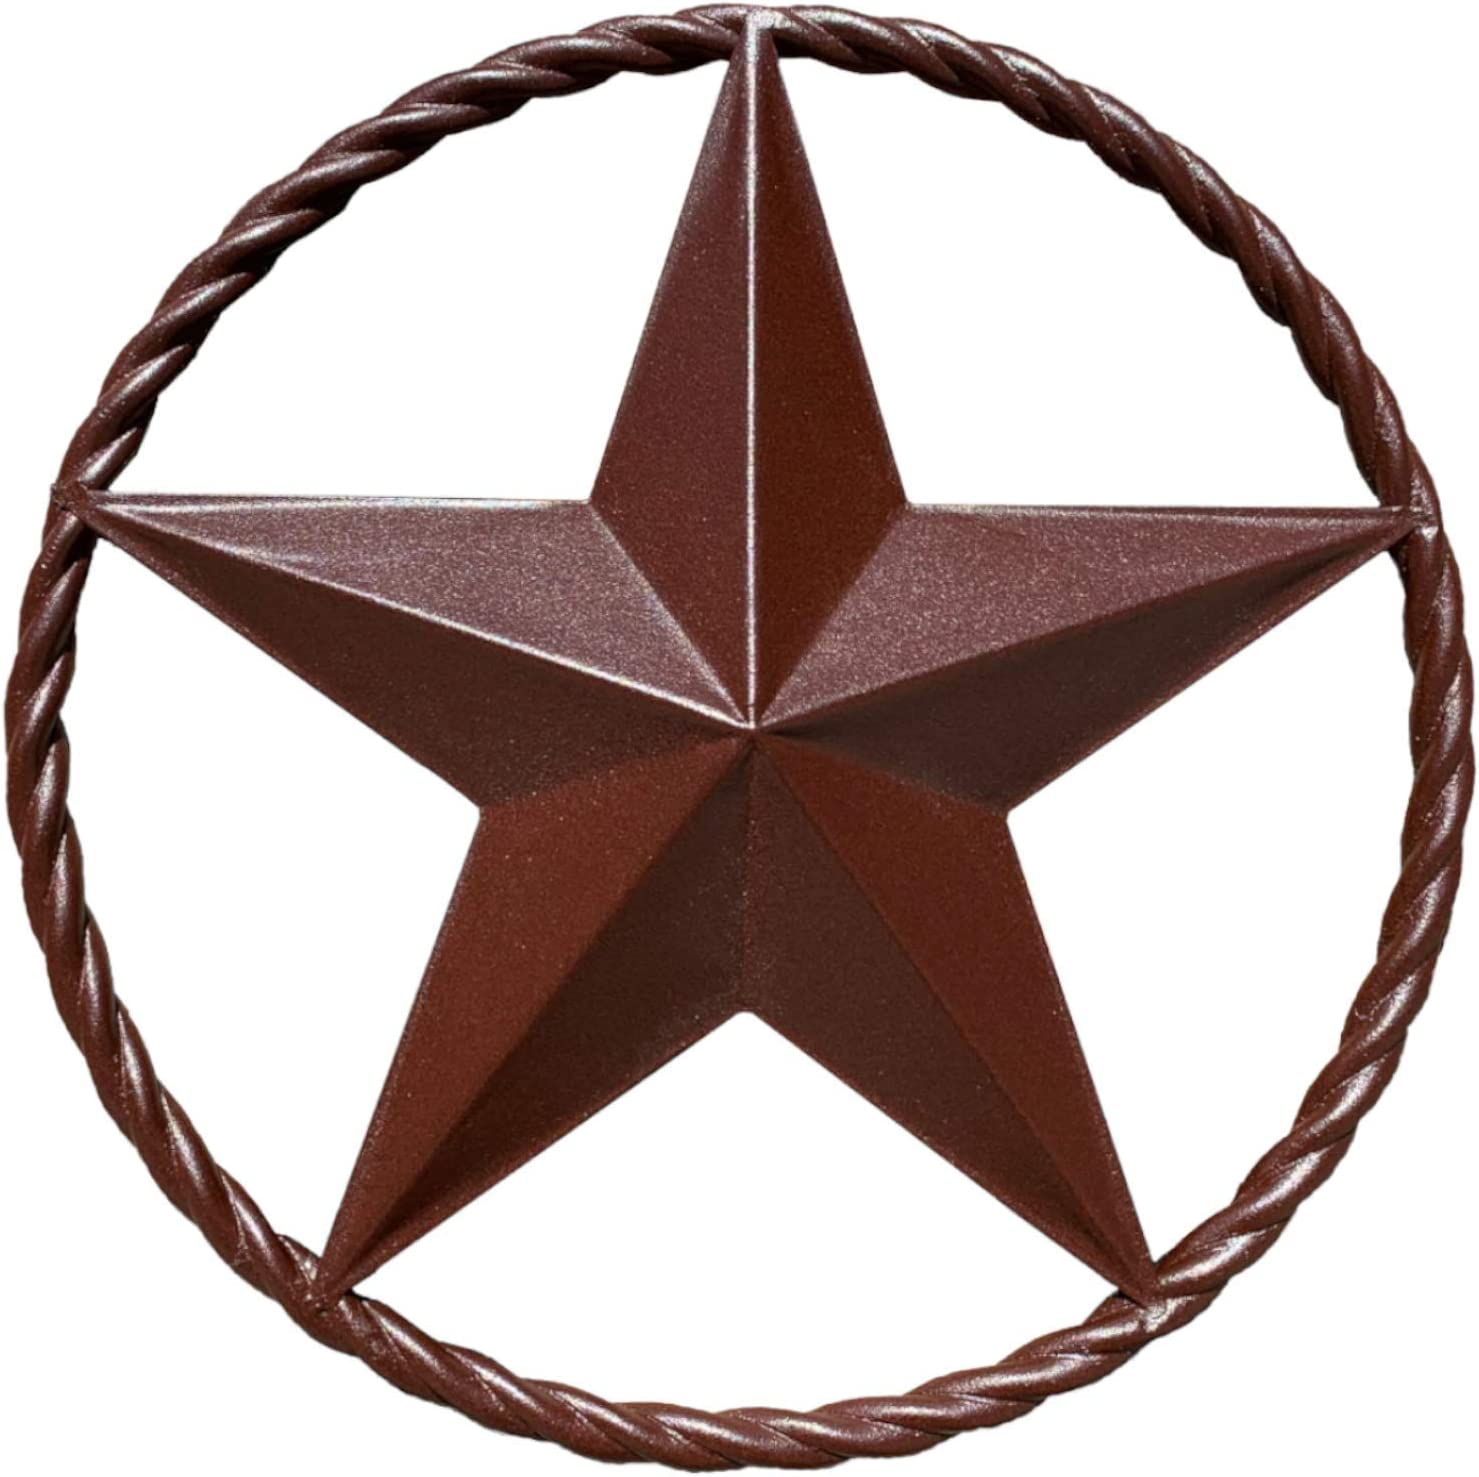 EcoRise Barn Star - Metal Stars for Outside Texas Stars Art Rustic Vintage Western Country Home Farmhouse Wall Decor (12